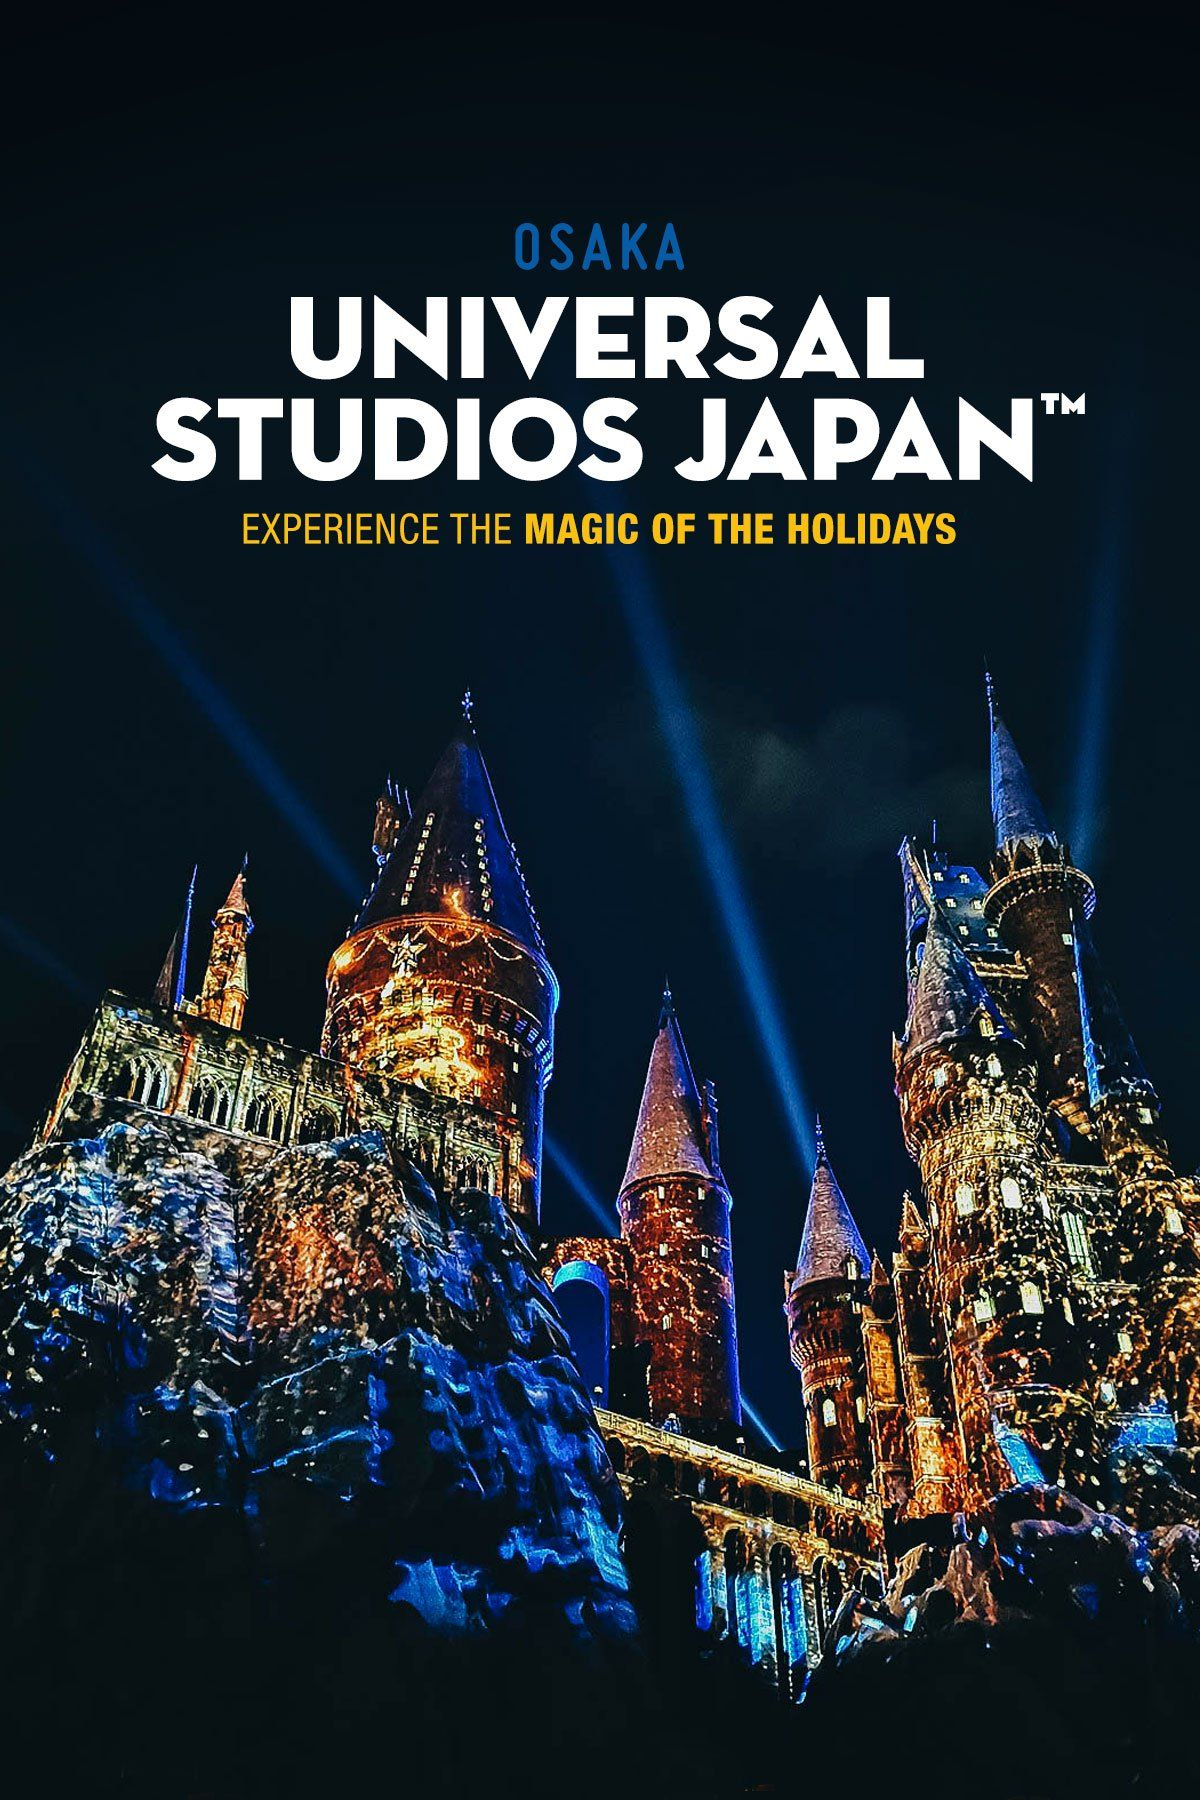 Experience the magic of the holidays at universal studios